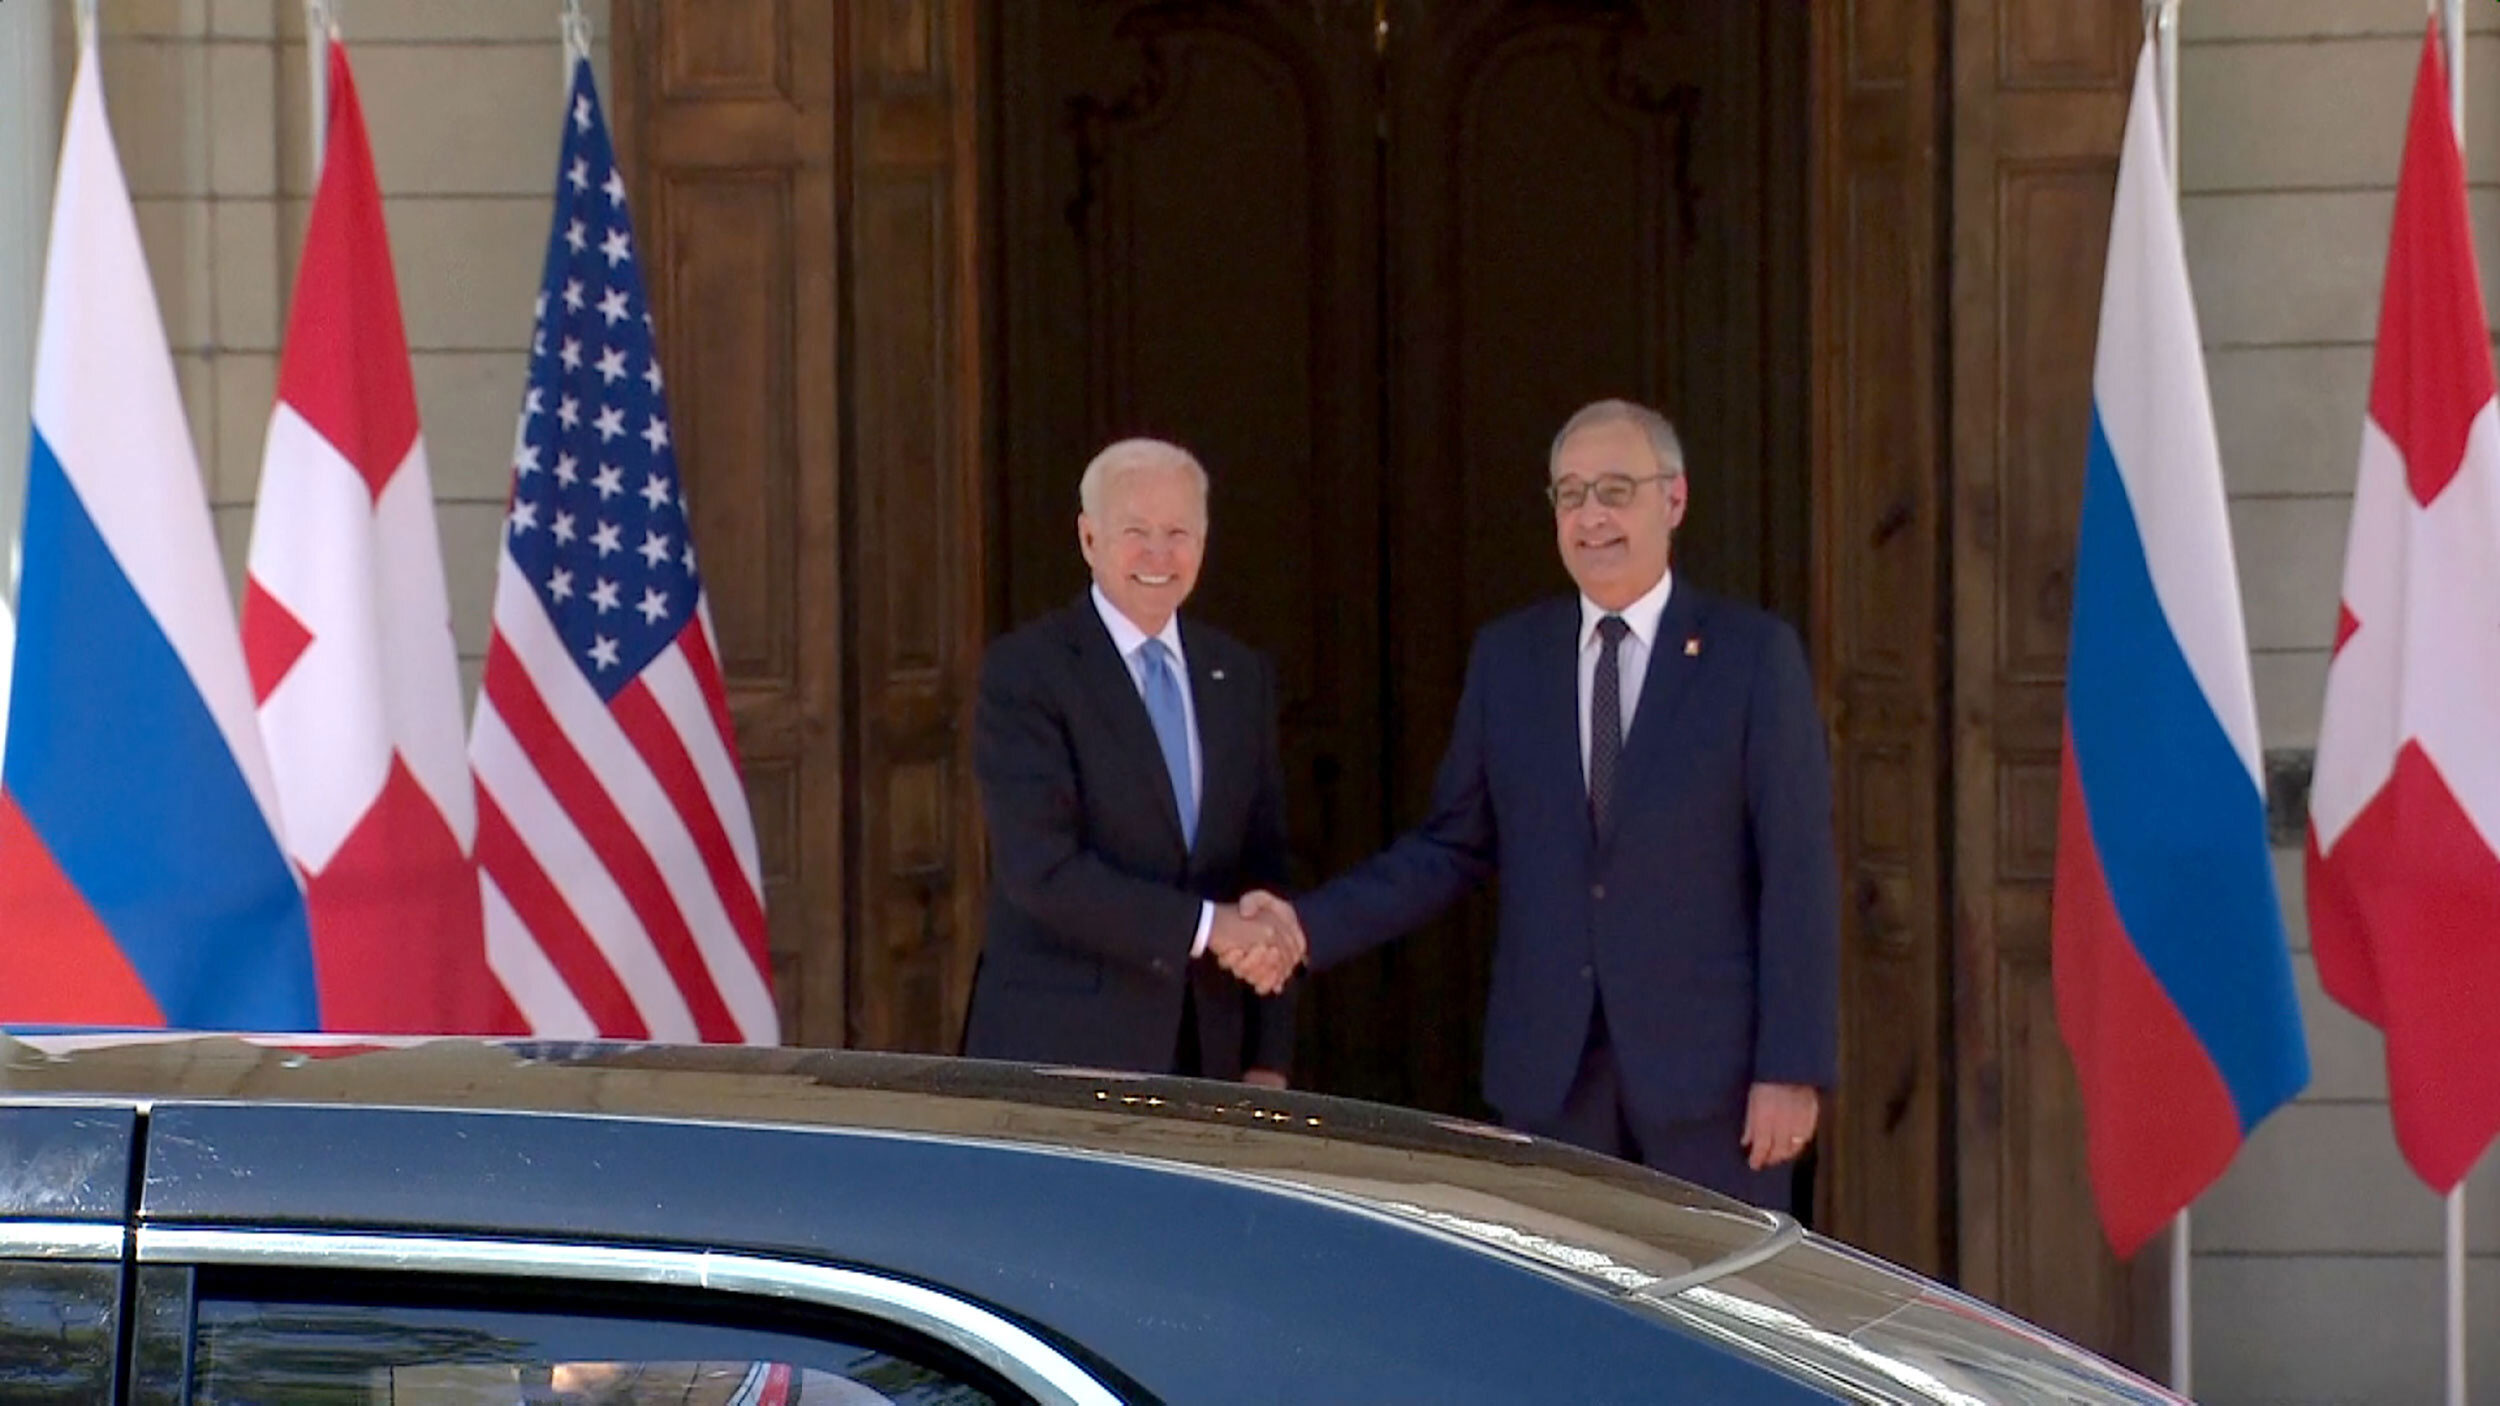 President Joe Biden is greeted to the summit site by Swiss President Guy Parmelin.